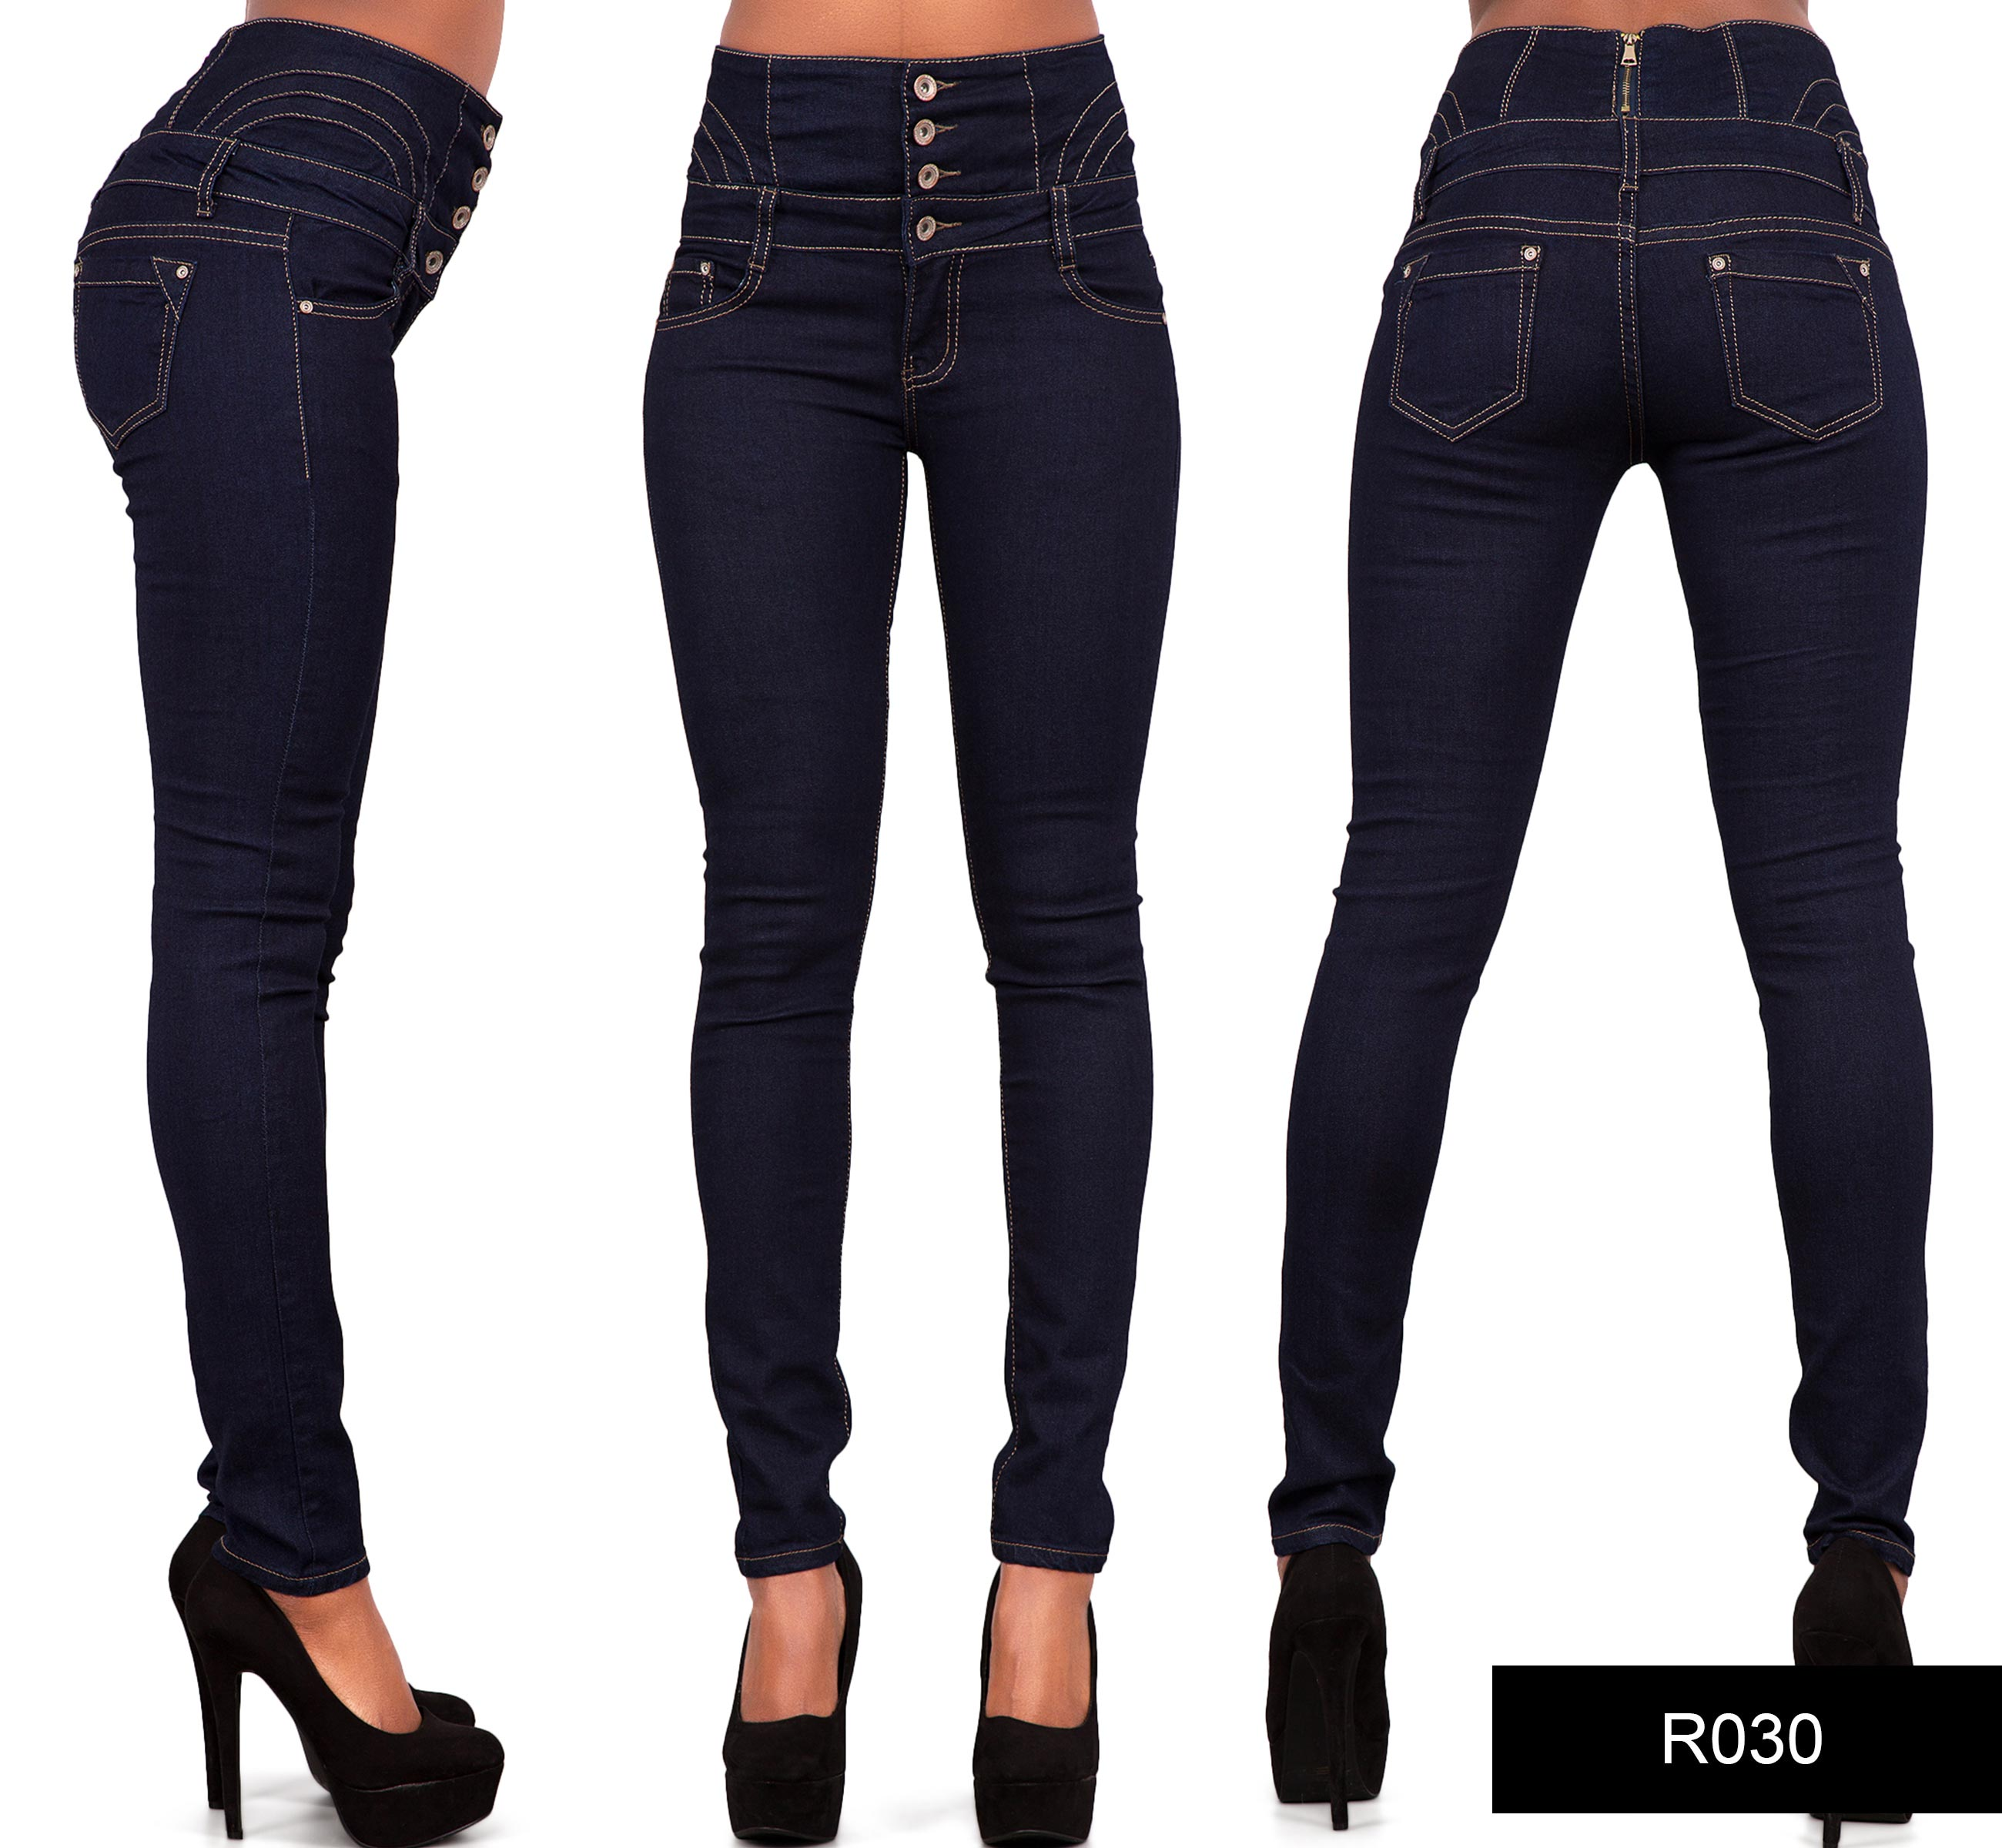 High waisted jeans for women are a modern revamp of the classic 90's fashion trend. Enjoy this high-rise look in a variety of washes and fits guaranteed to give you that look-amazing feeling. Accentuating your waist and hips, high waisted jeans flatter your figure with .